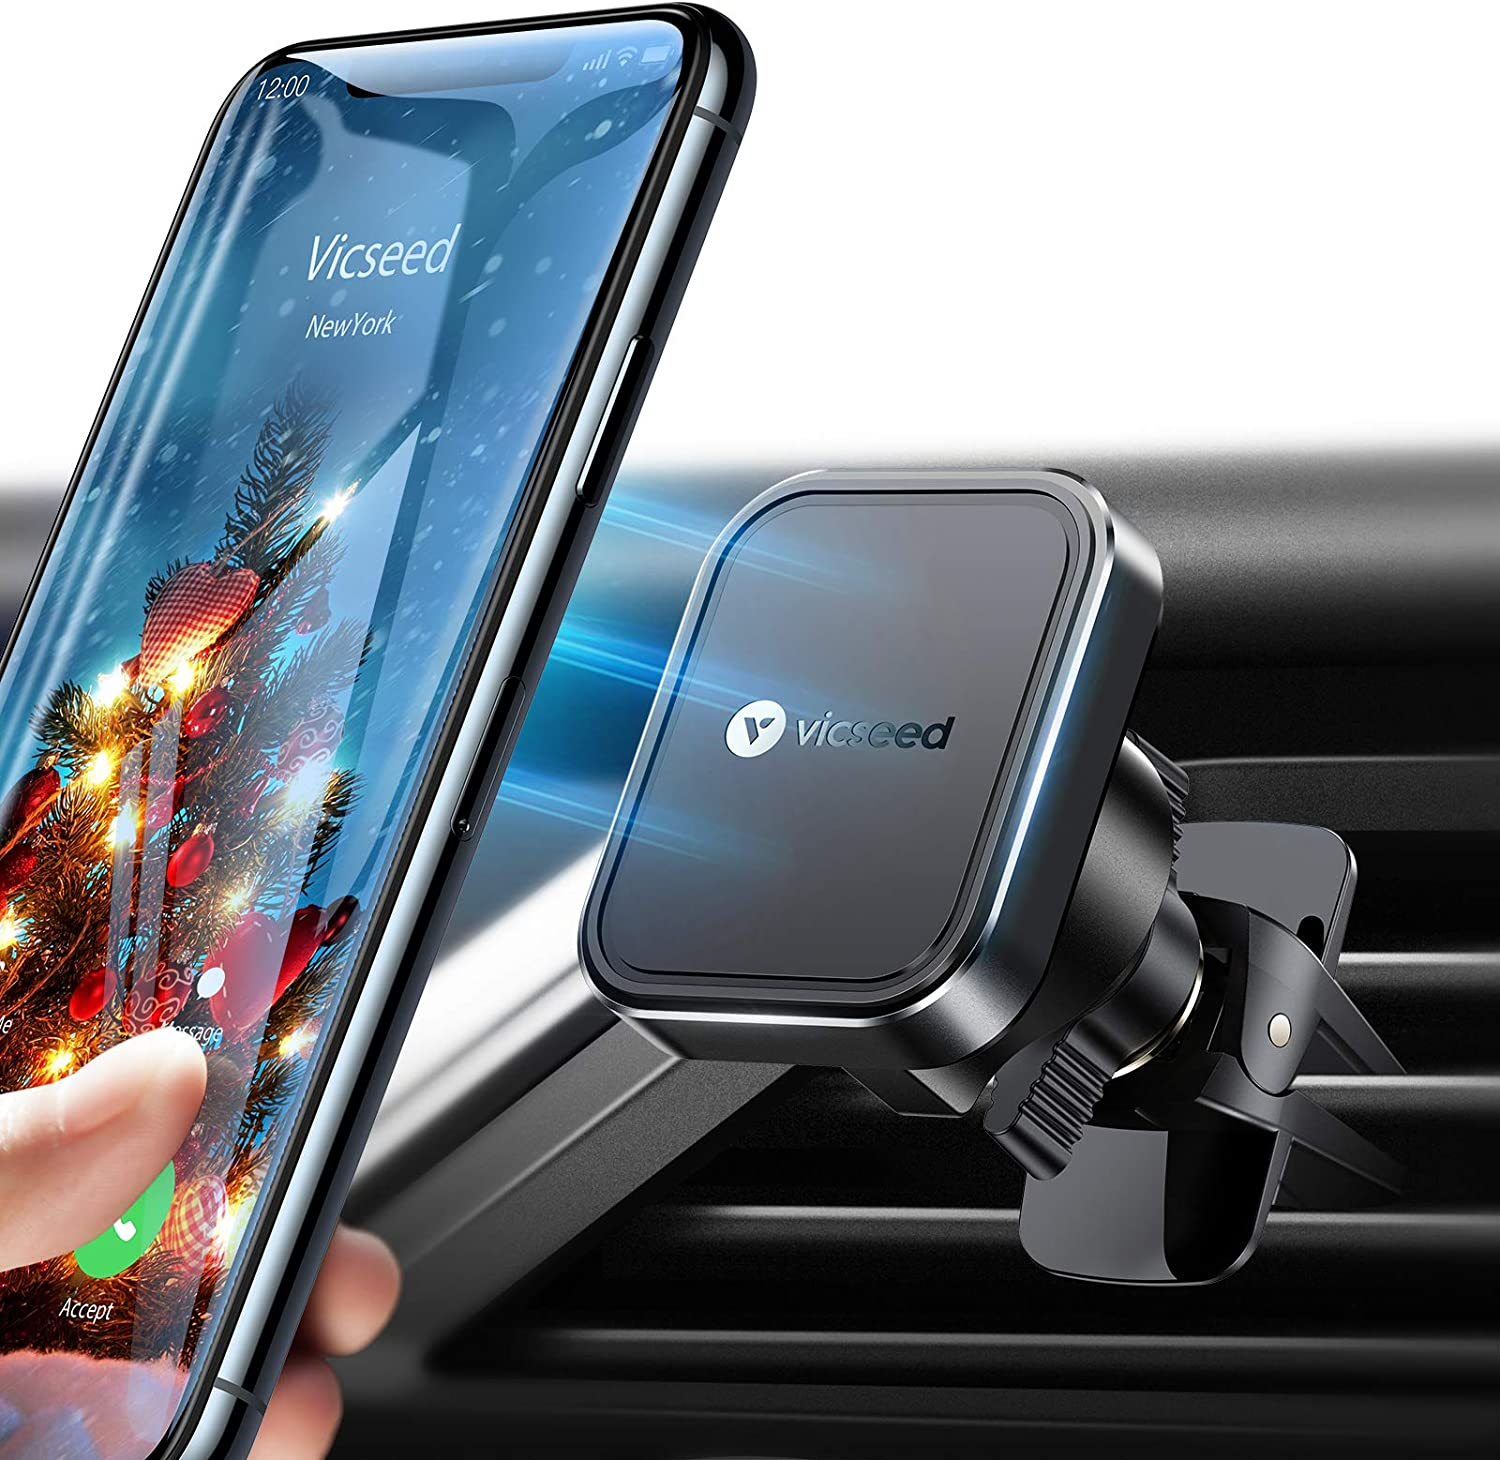 best phone holder for round air vents, VICSEED phone holder for round air vents